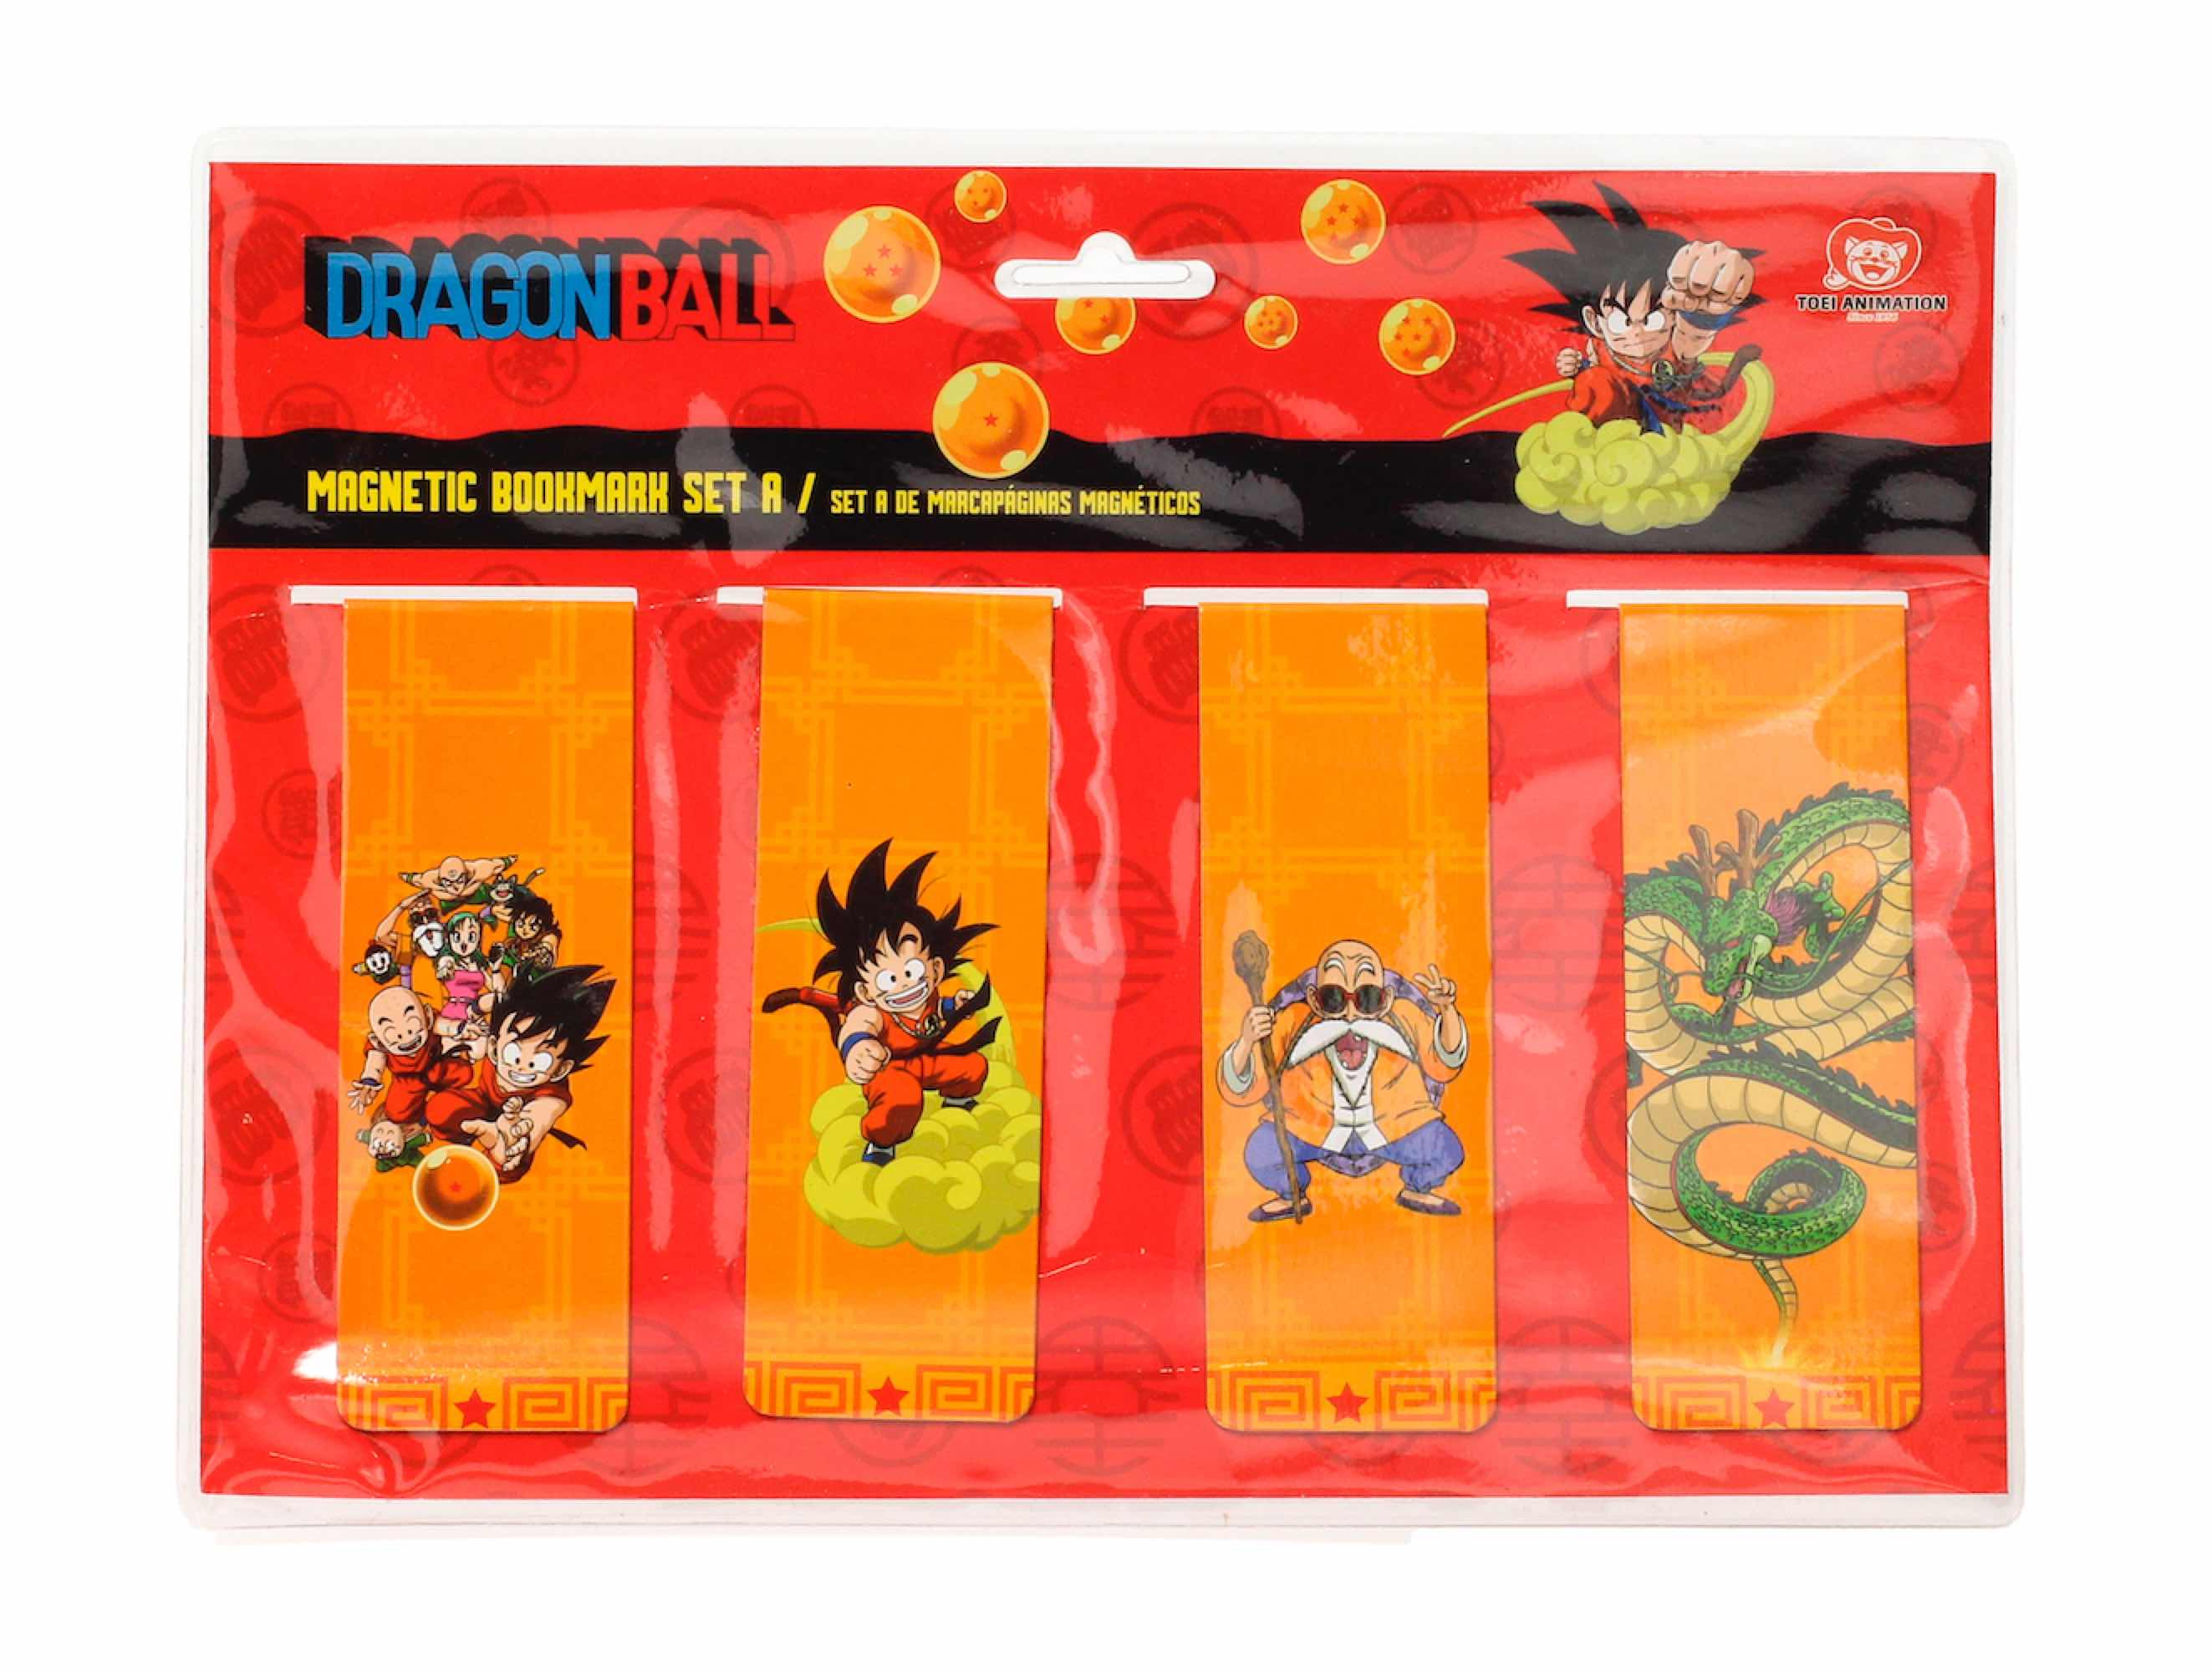 PERSONAJES DB SET A PUNTOS DE LIBRO MAGNETICOS DRAGON BALL